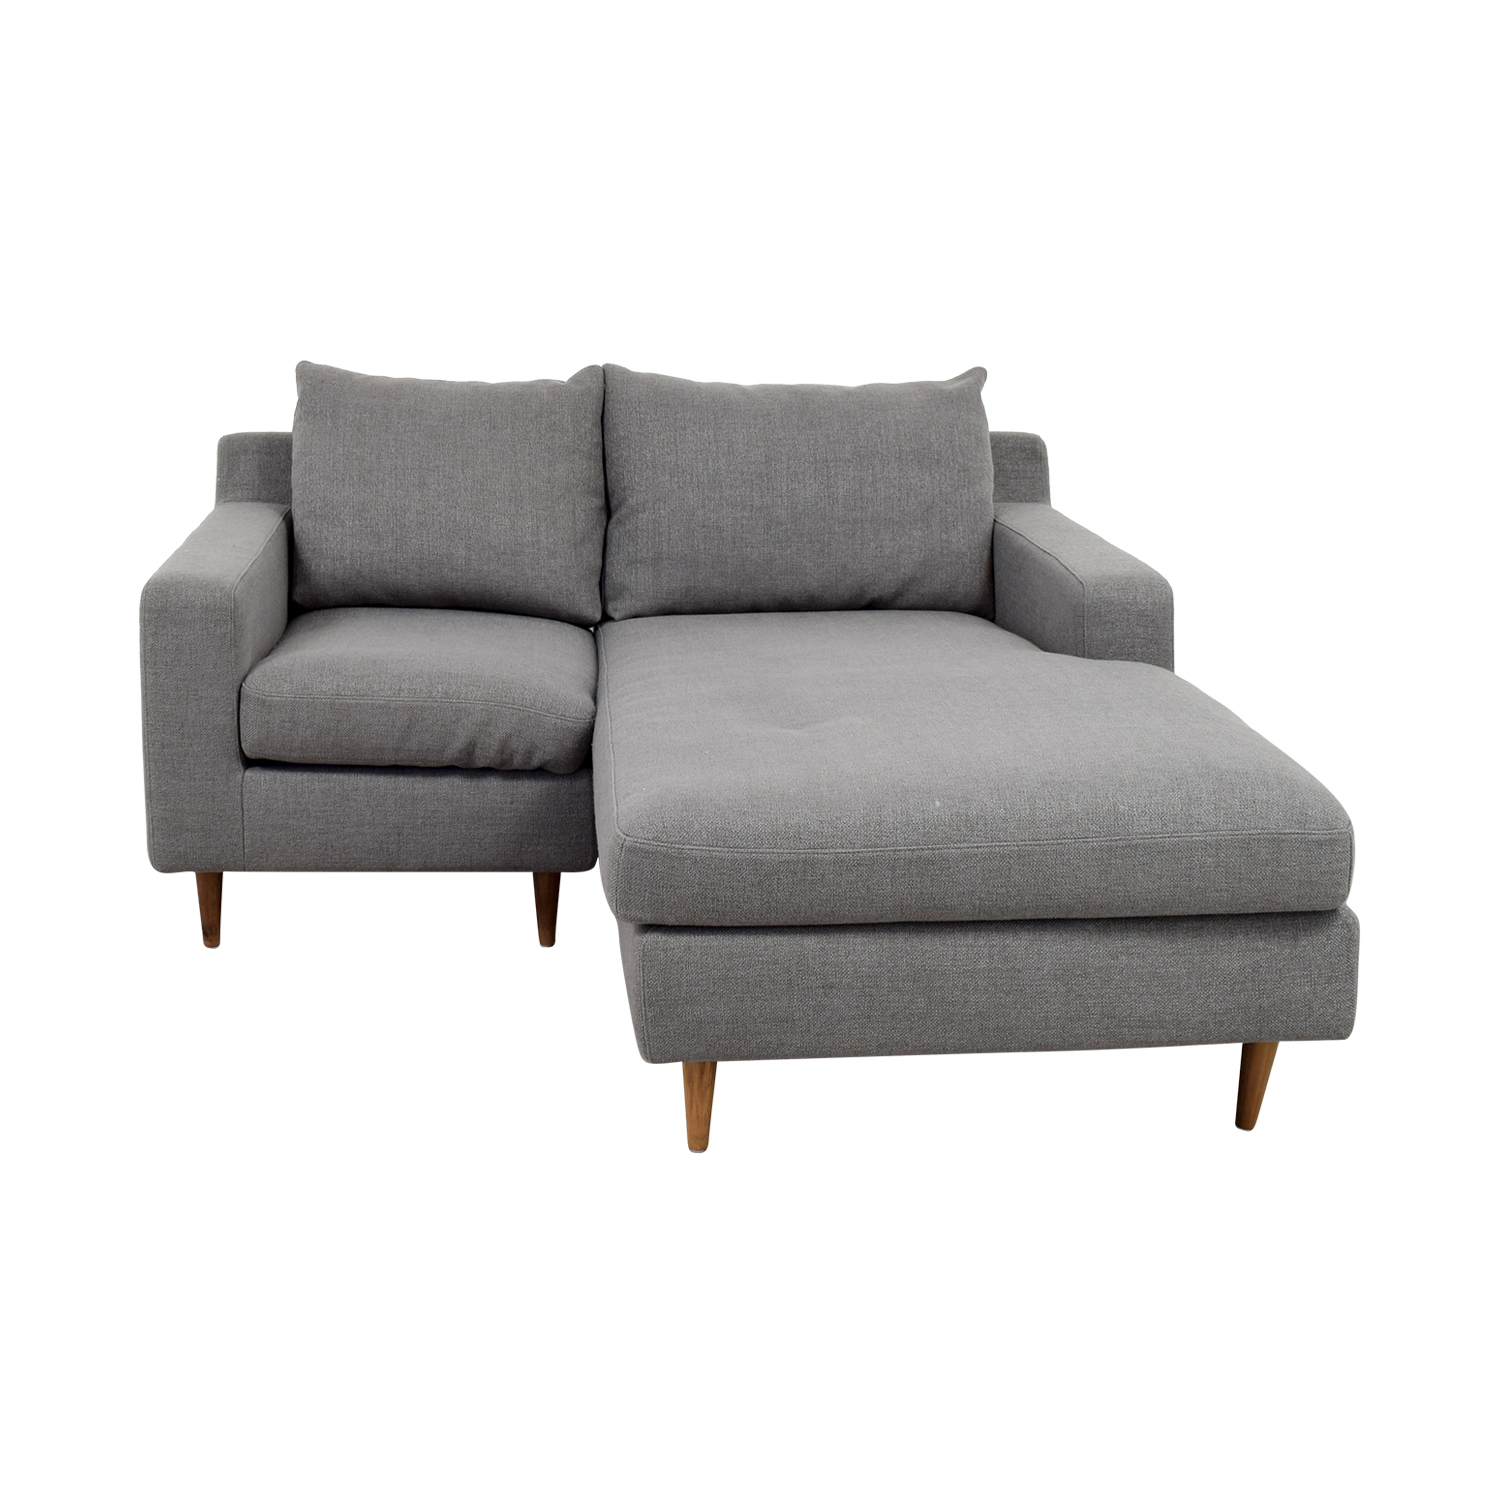 Order Sofa Online Sofas Couches Loveseats For Less Thesofa